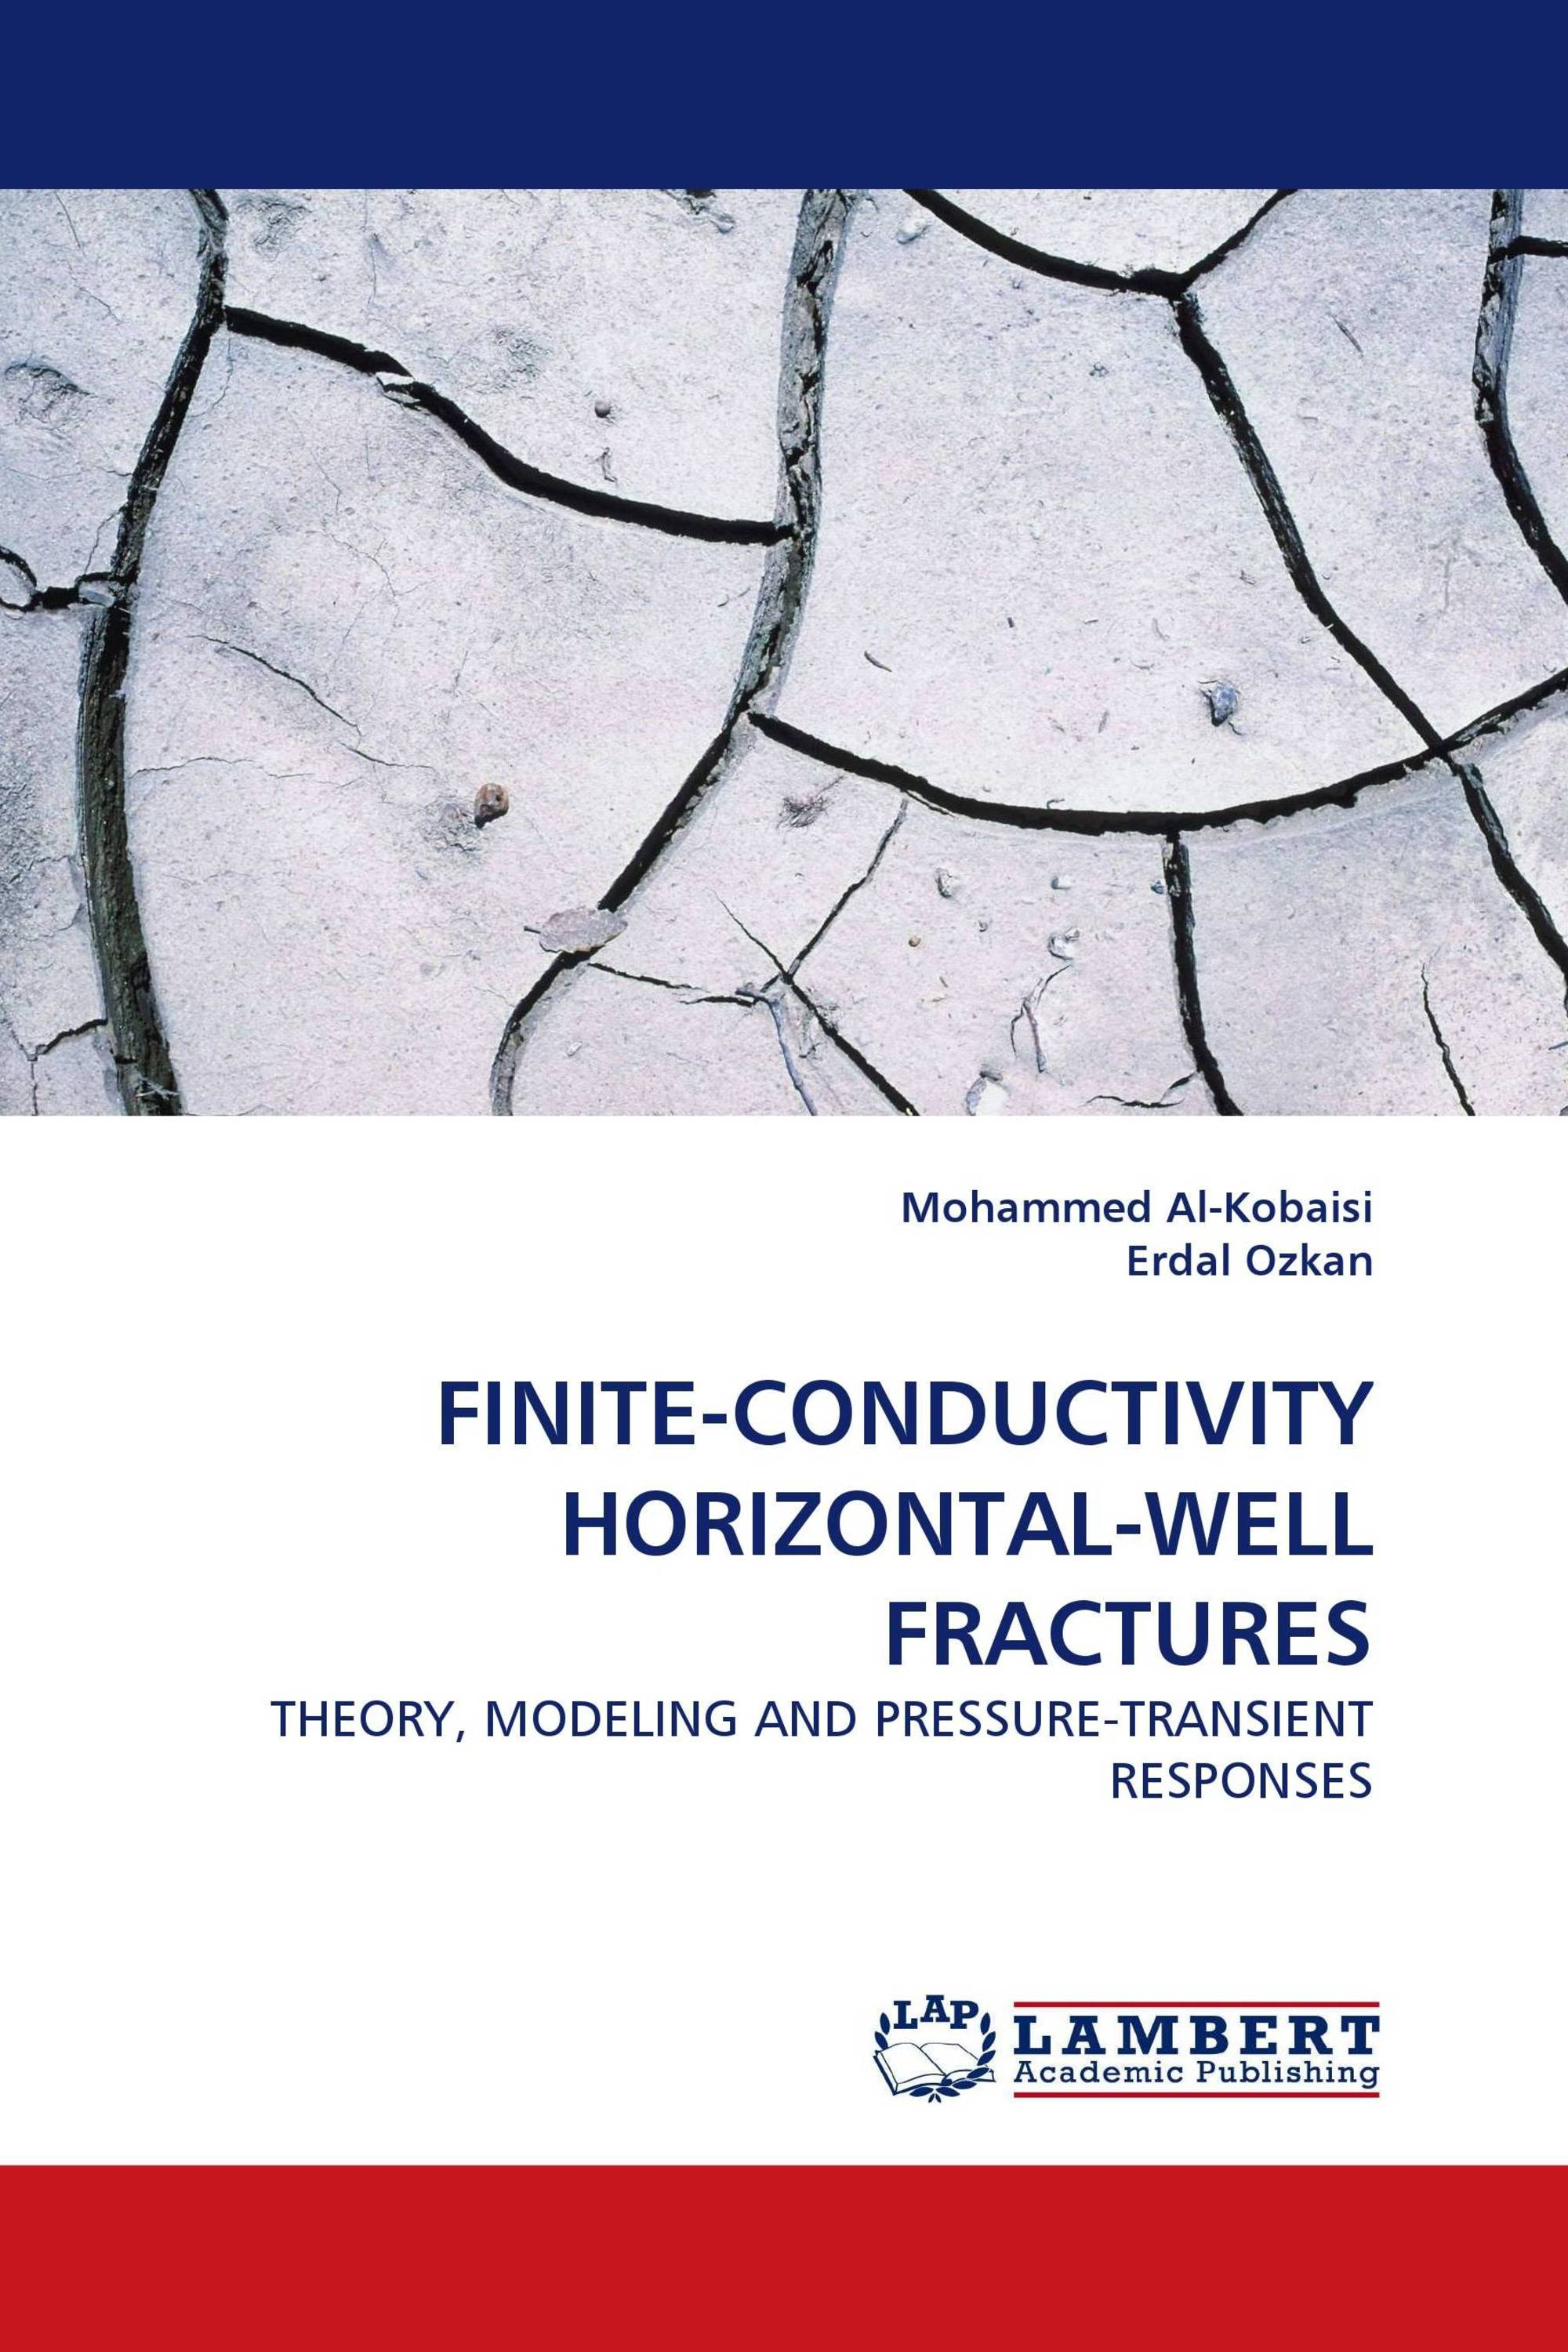 FINITE-CONDUCTIVITY HORIZONTAL-WELL FRACTURES